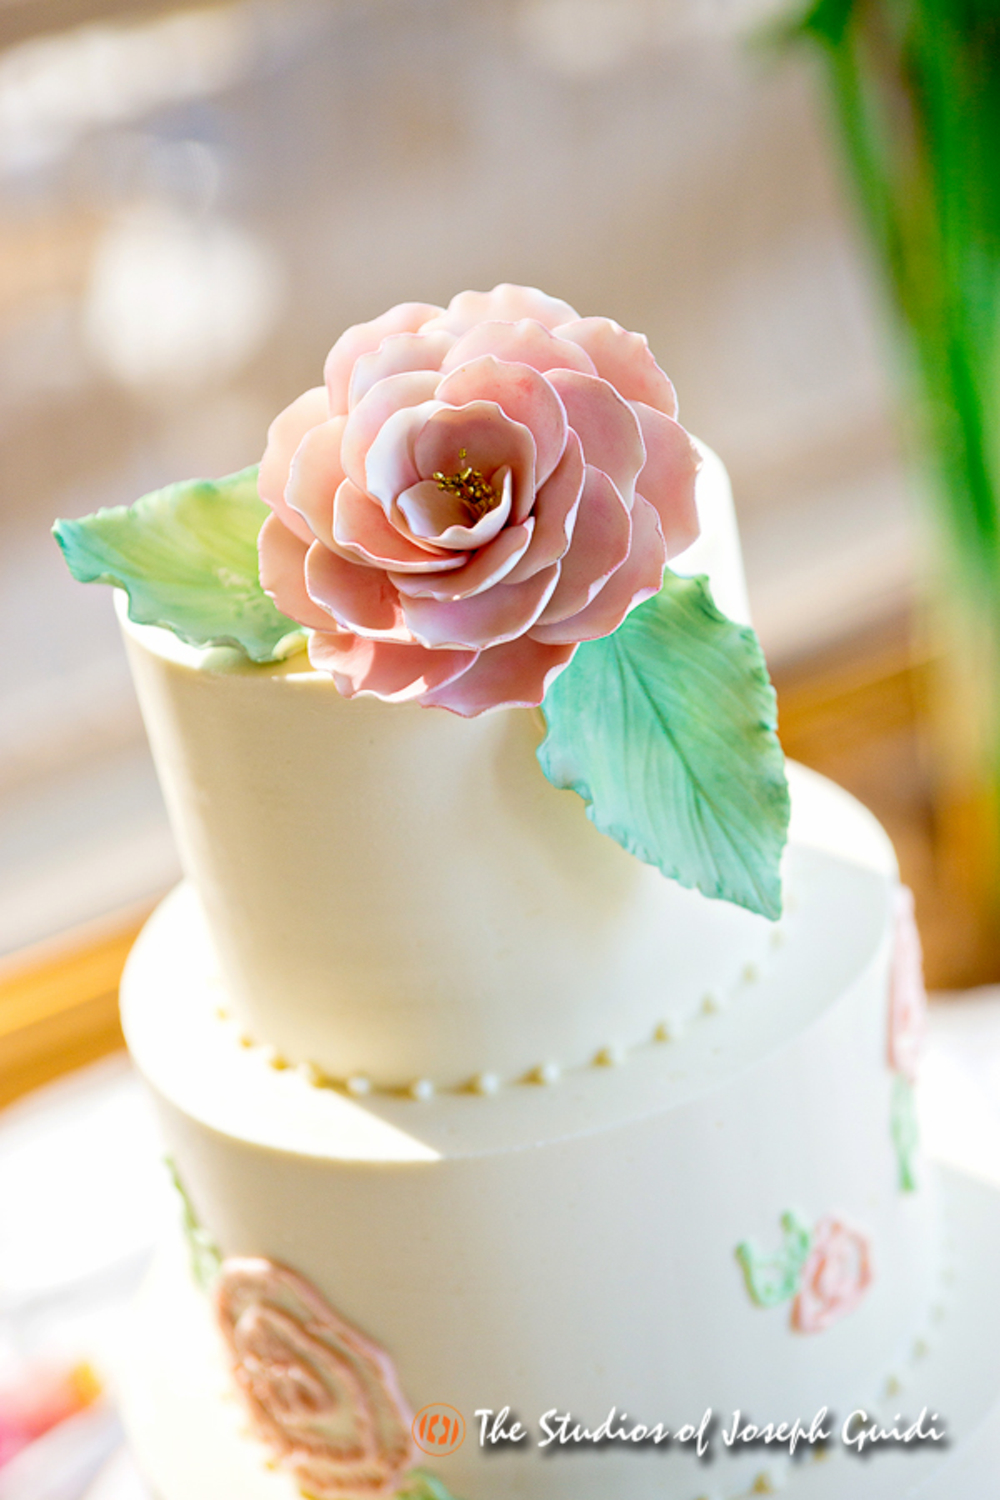 painted-rose-cake-sugar-rose-leaves-by-sweet-cheeks-baking-co-at-humphreys-joseph-guidi-photography-4